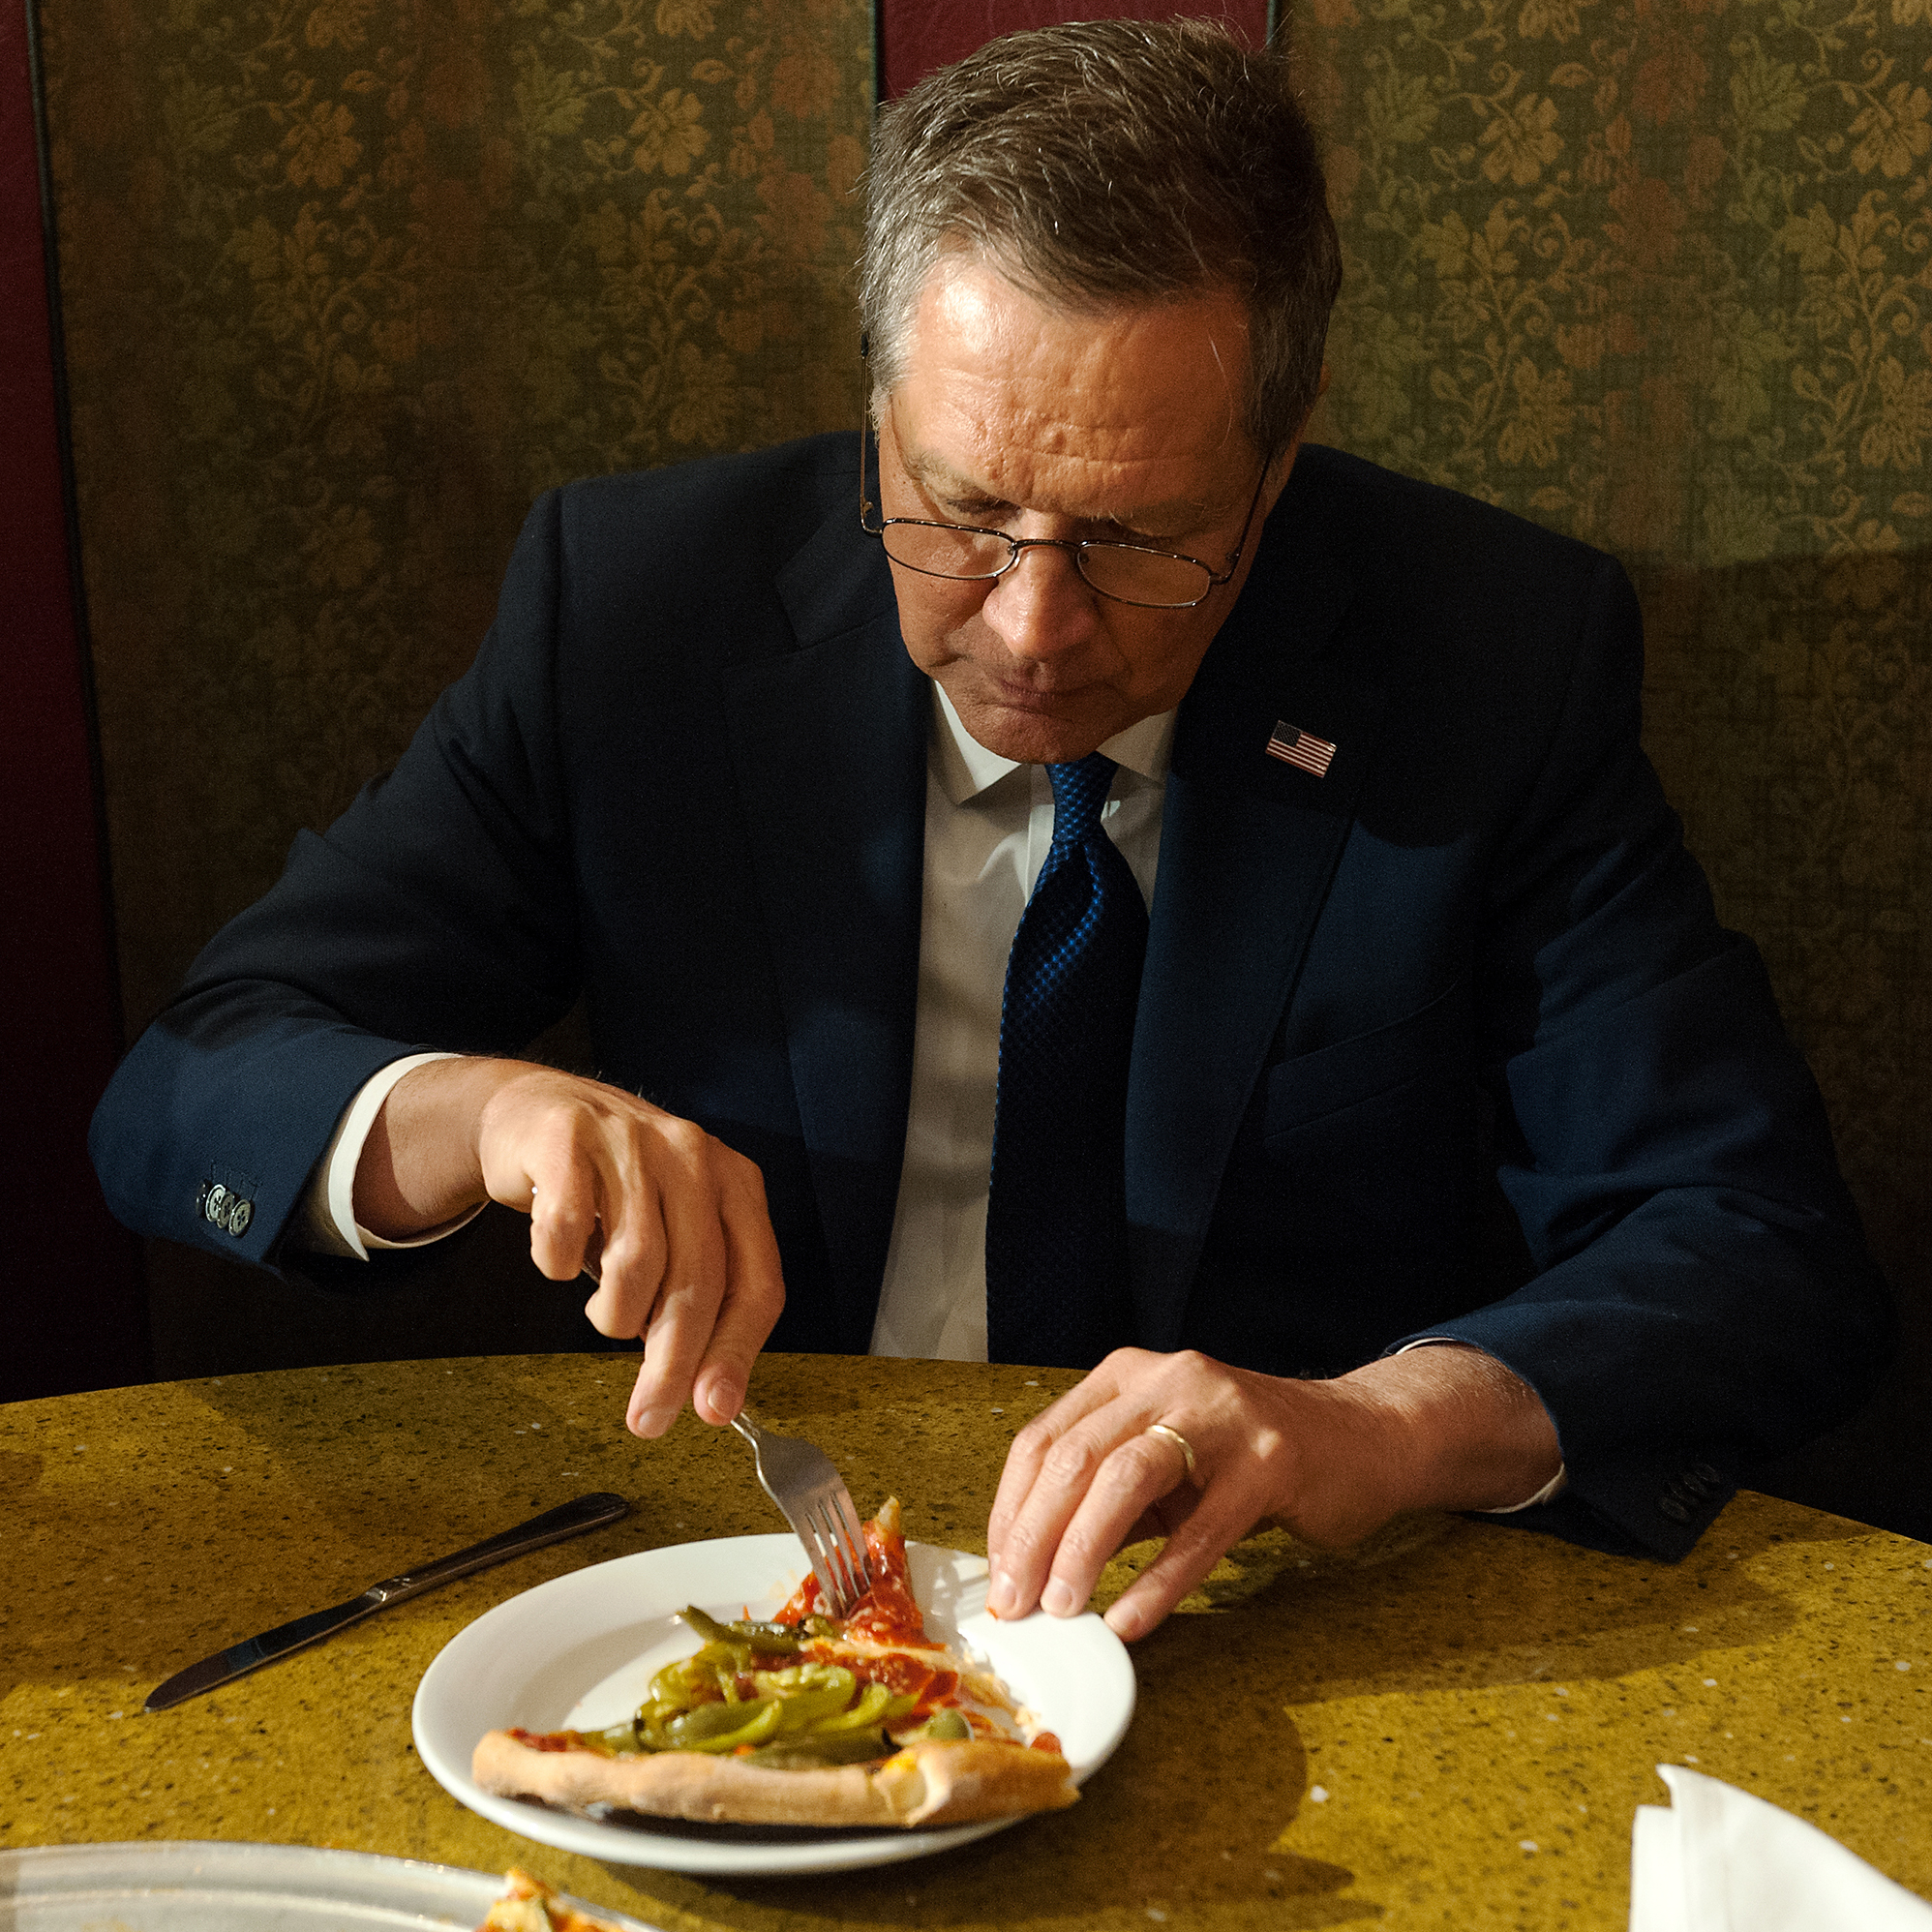 John Kasich's Values Don't Include Proper Pizza Eating